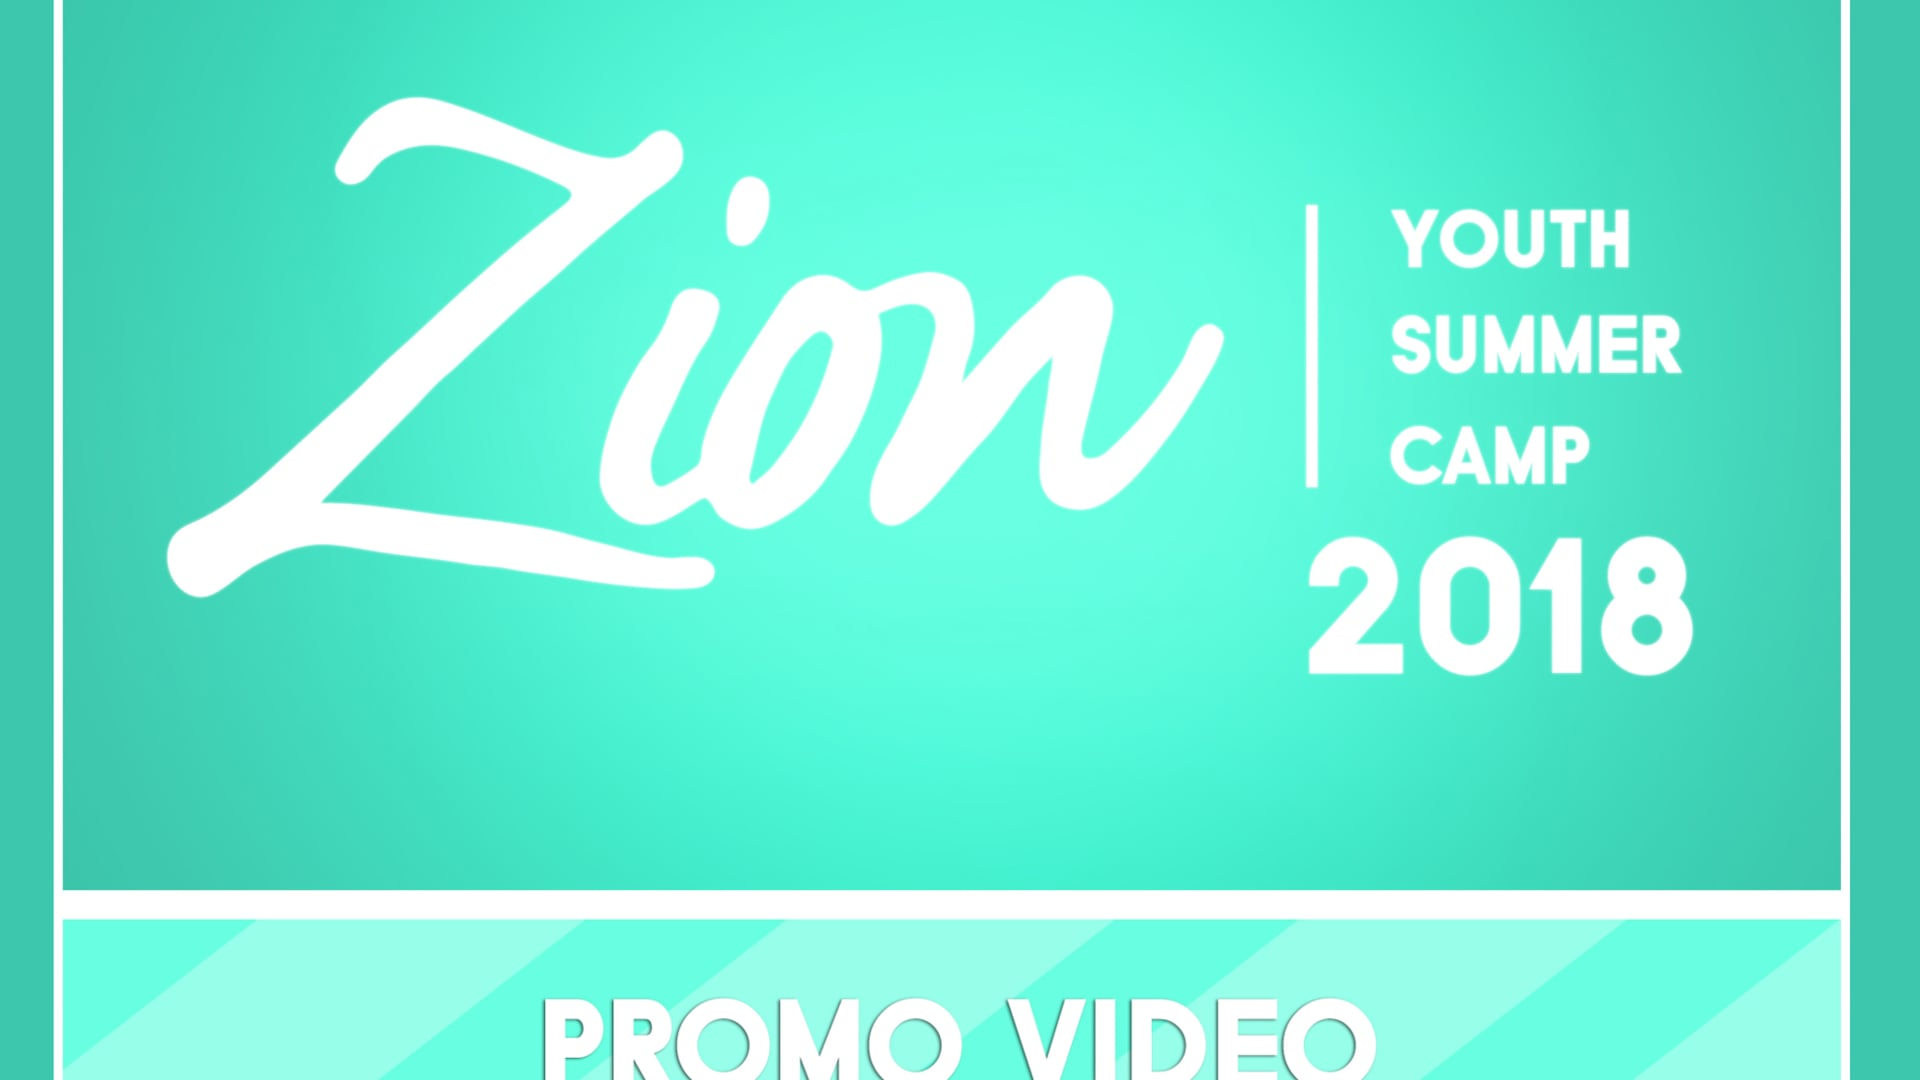 Zion Youth Summer Camp 2018 Promo